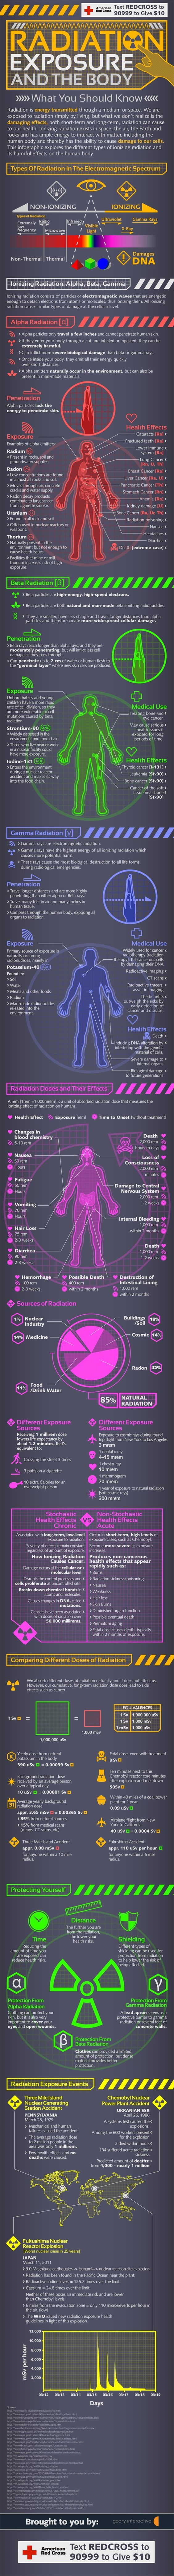 Why you should freak about radiation exposure!